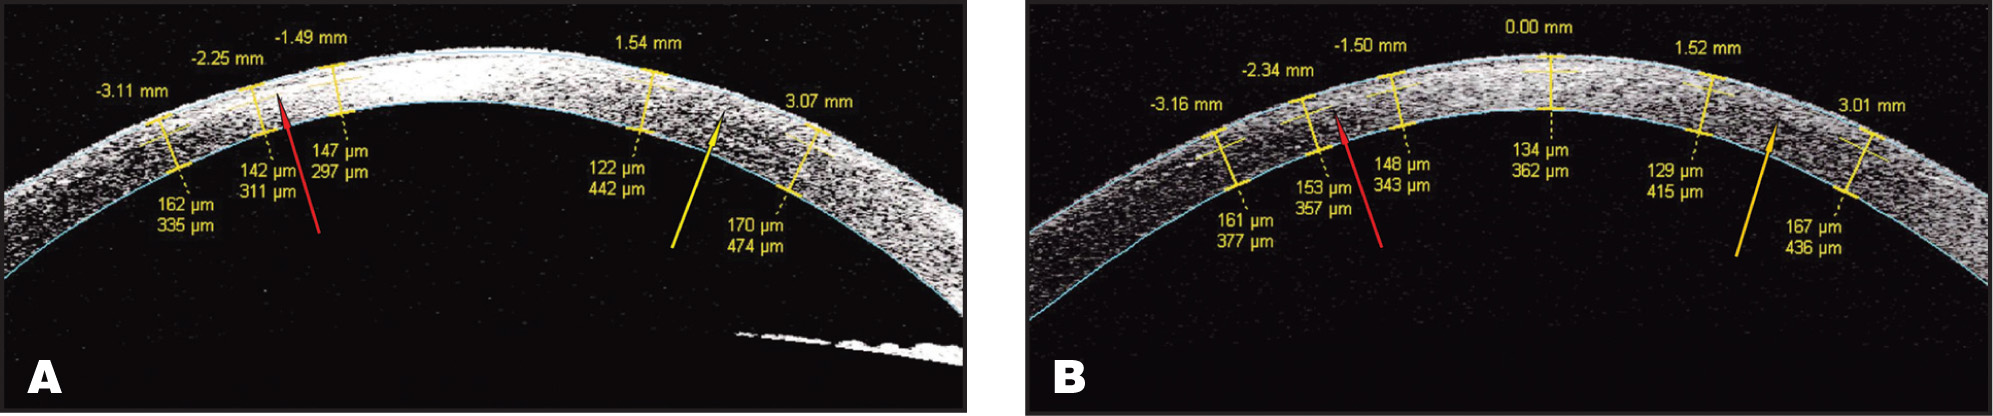 (A) Anterior segment optical coherence tomography 1 month after surgery. The −1.50 and −2.25 mm measurements within the involved area of the temporal cornea show the flap thickness is maintained in the affected area (red arrows) compared with the uninvolved nasal cornea (yellow arrows). This localizes the tissue loss to just posterior to the flap in the residual stromal bed (red arrows). This corresponds to the clinical observation of the interface opacity extending posteriorly into the stroma as reported by Sonmez and Maloney.1 (B) Follow-up scan showing interval decrease in stromal thinning.